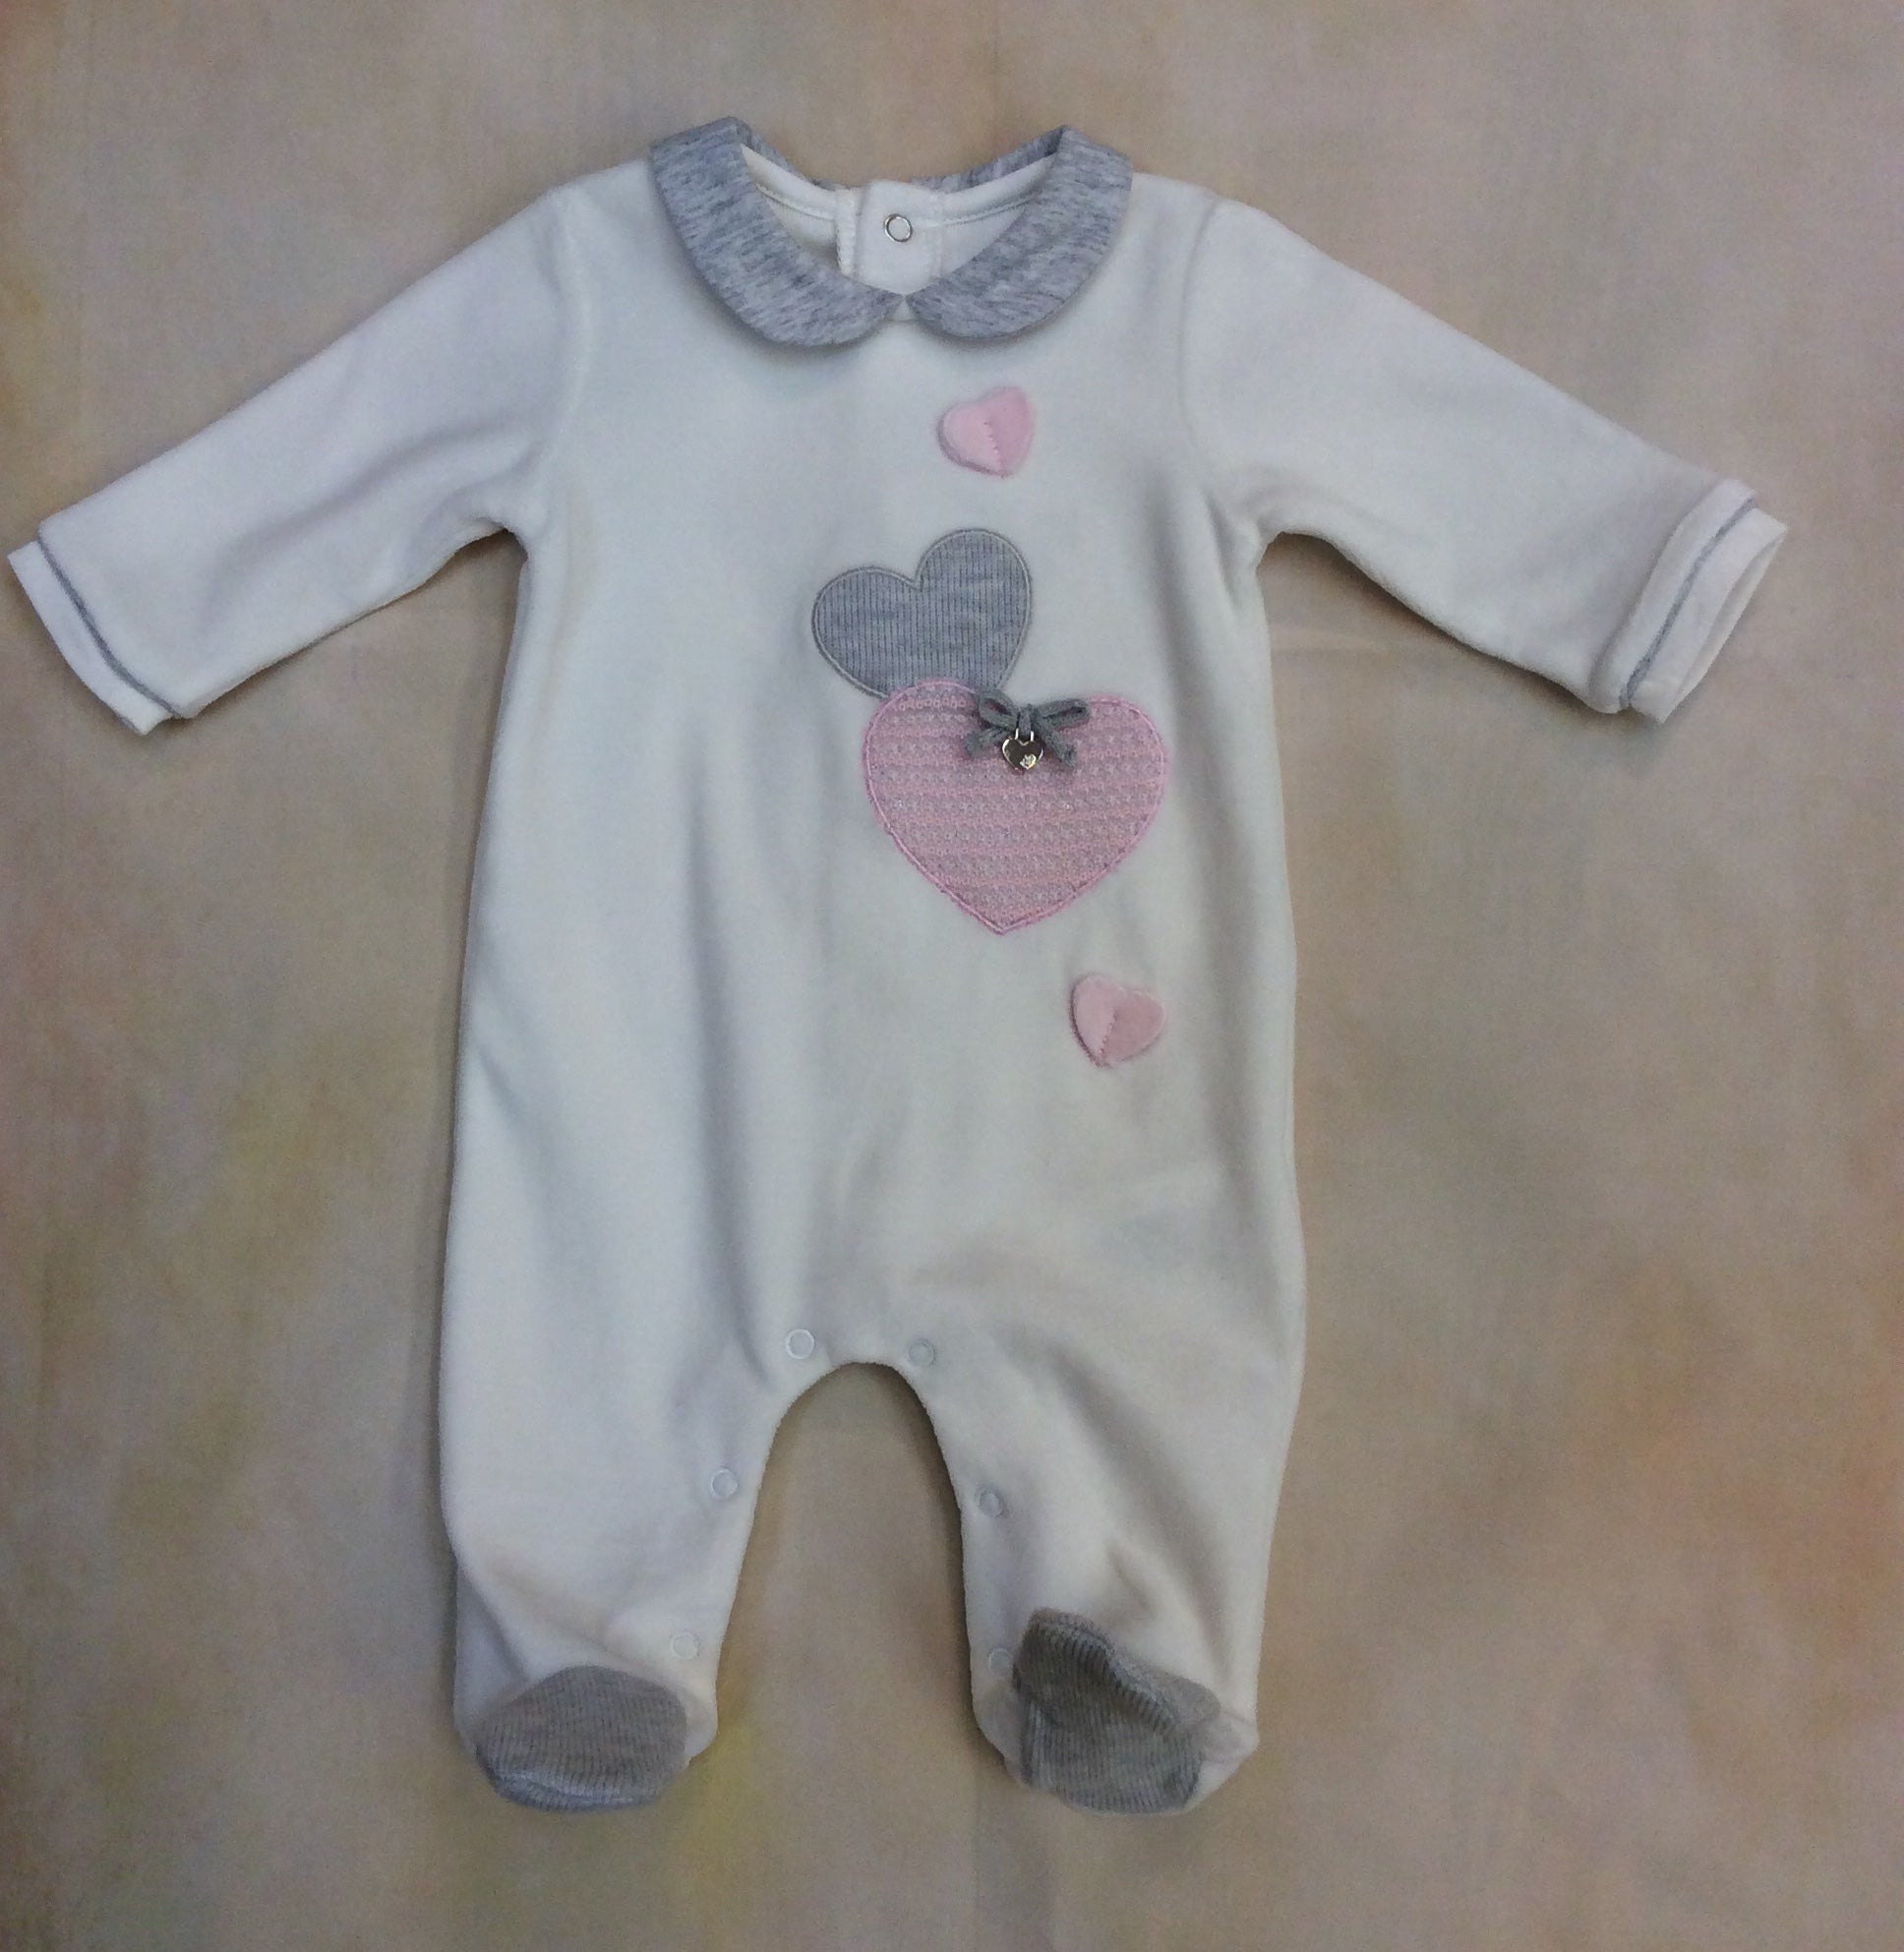 So soft all cream velvet with gray & pink heart footed little girl layette outfit Style#2703 - Nenes Lullaby Boutique Inc